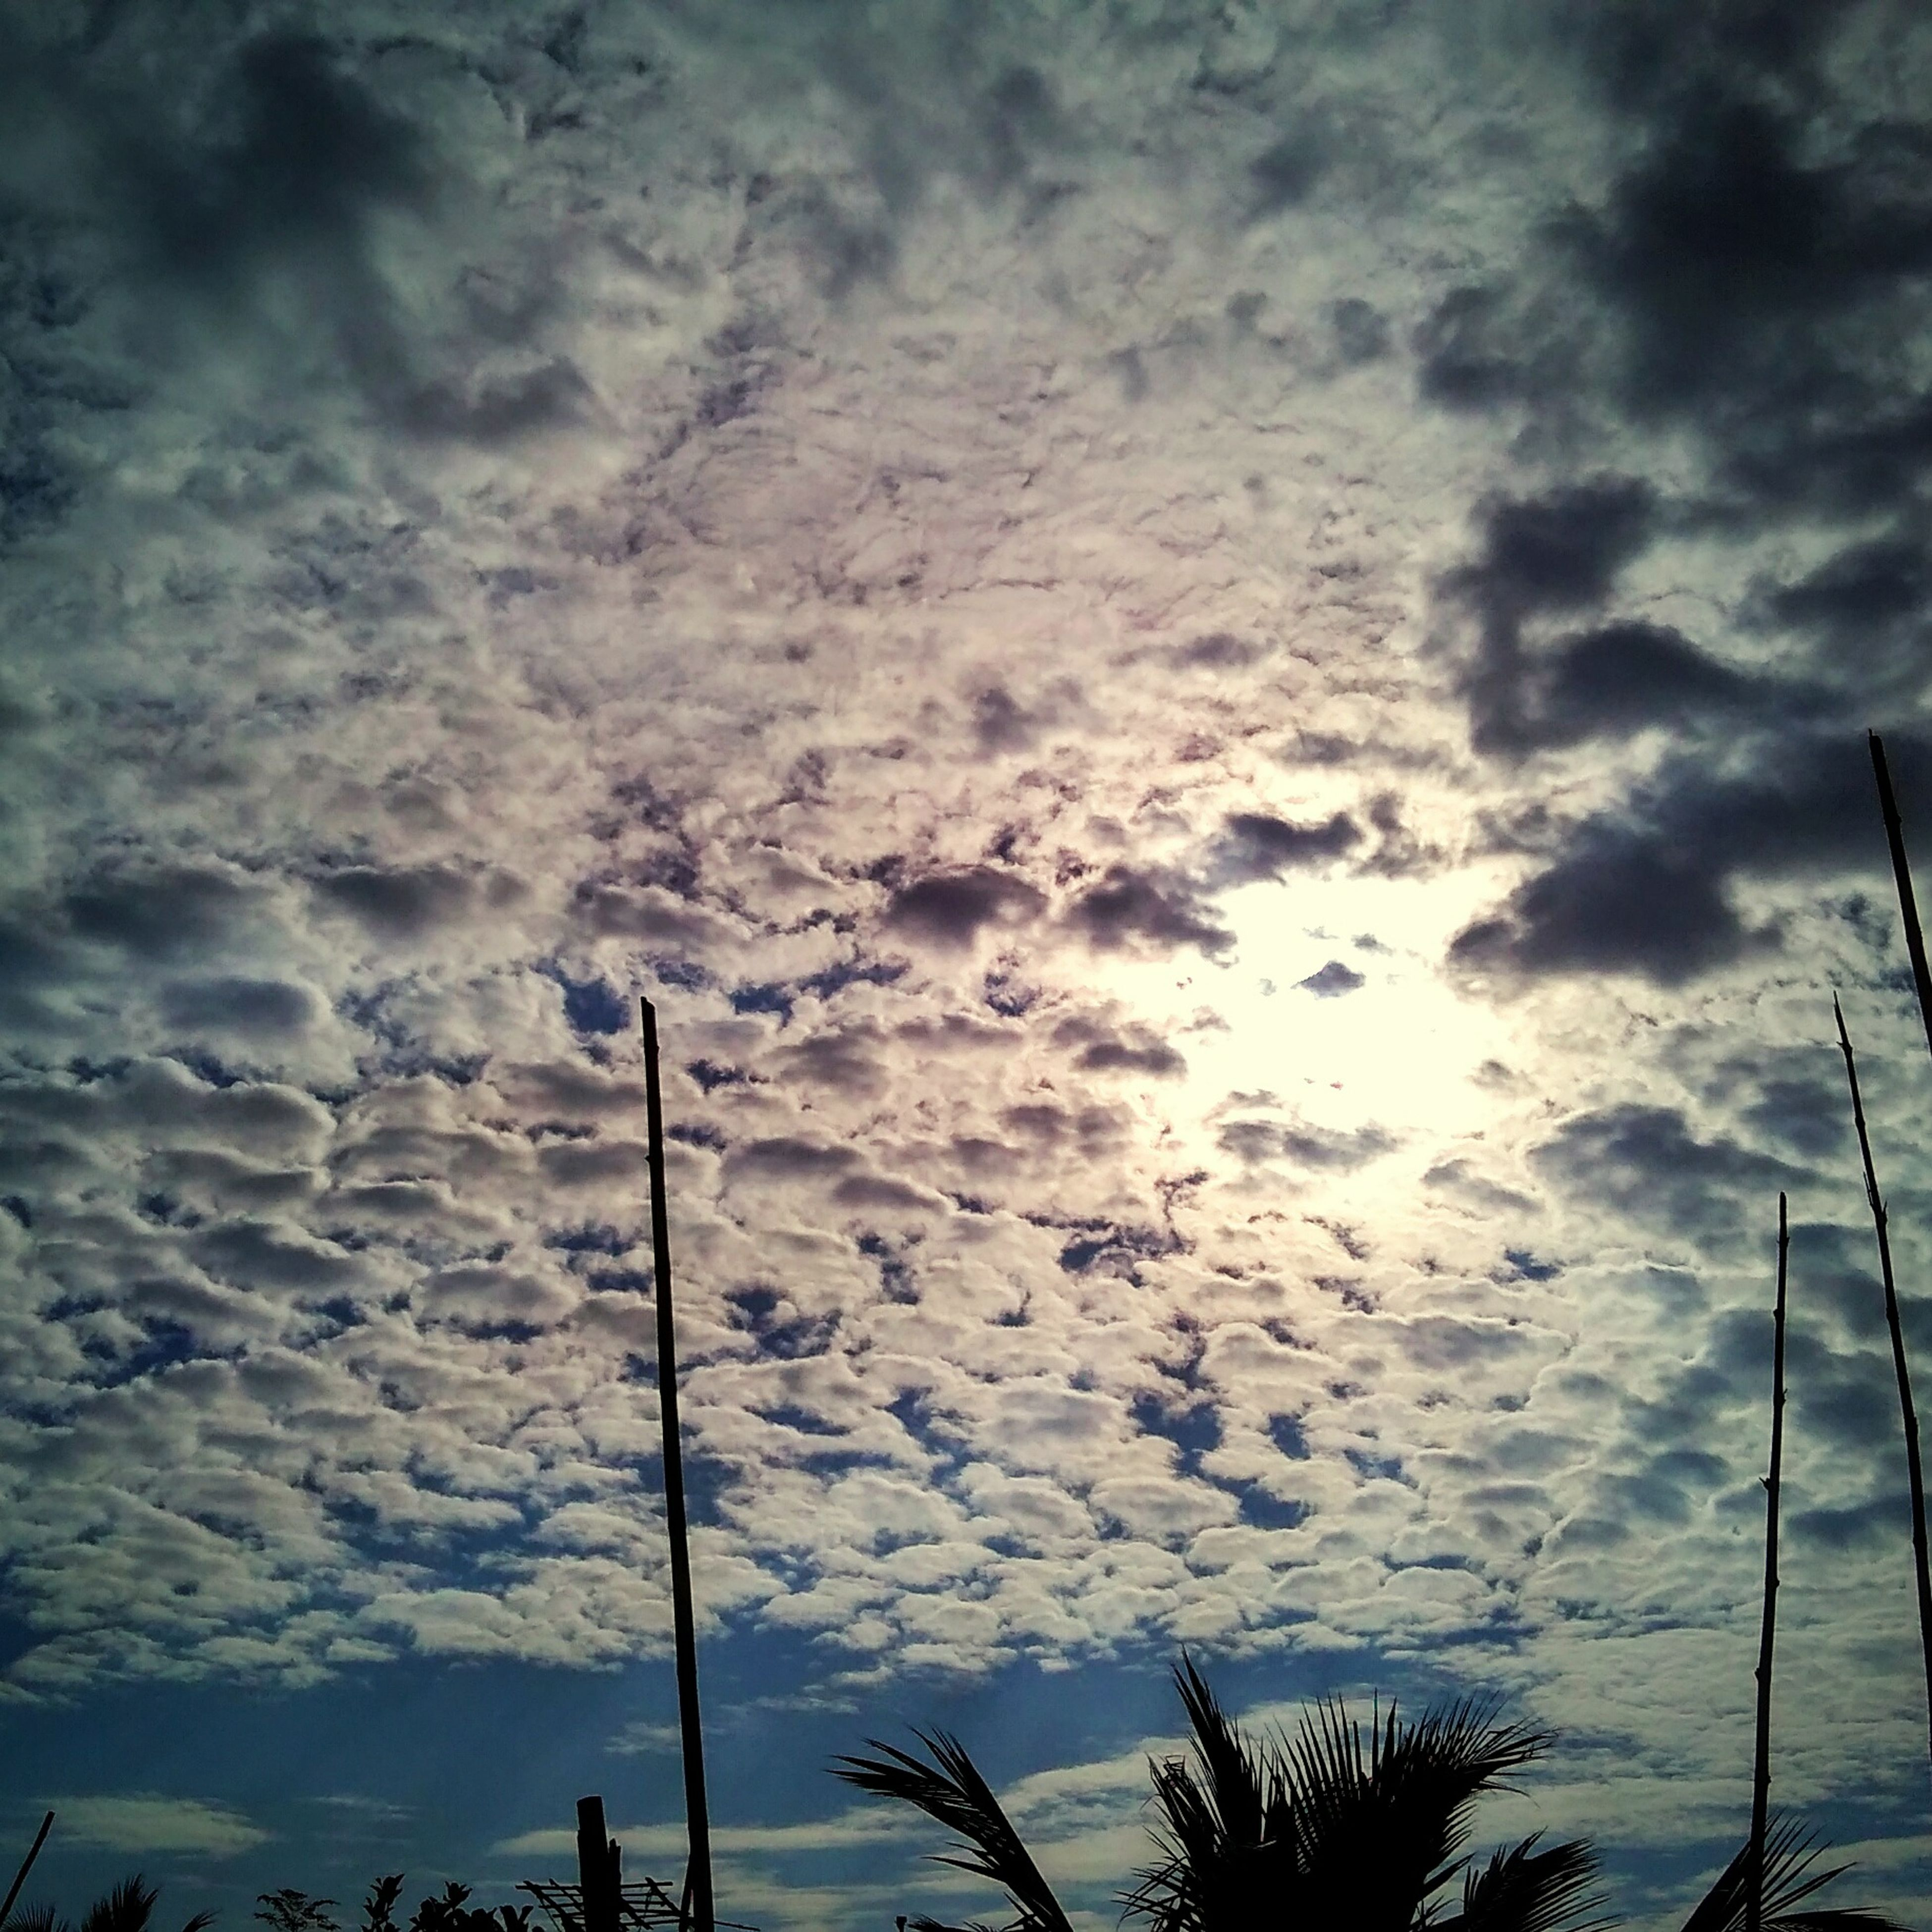 sky, cloud - sky, low angle view, cloudy, street light, silhouette, tranquility, weather, nature, beauty in nature, cloud, scenics, tranquil scene, overcast, dusk, sunset, lighting equipment, outdoors, no people, pole